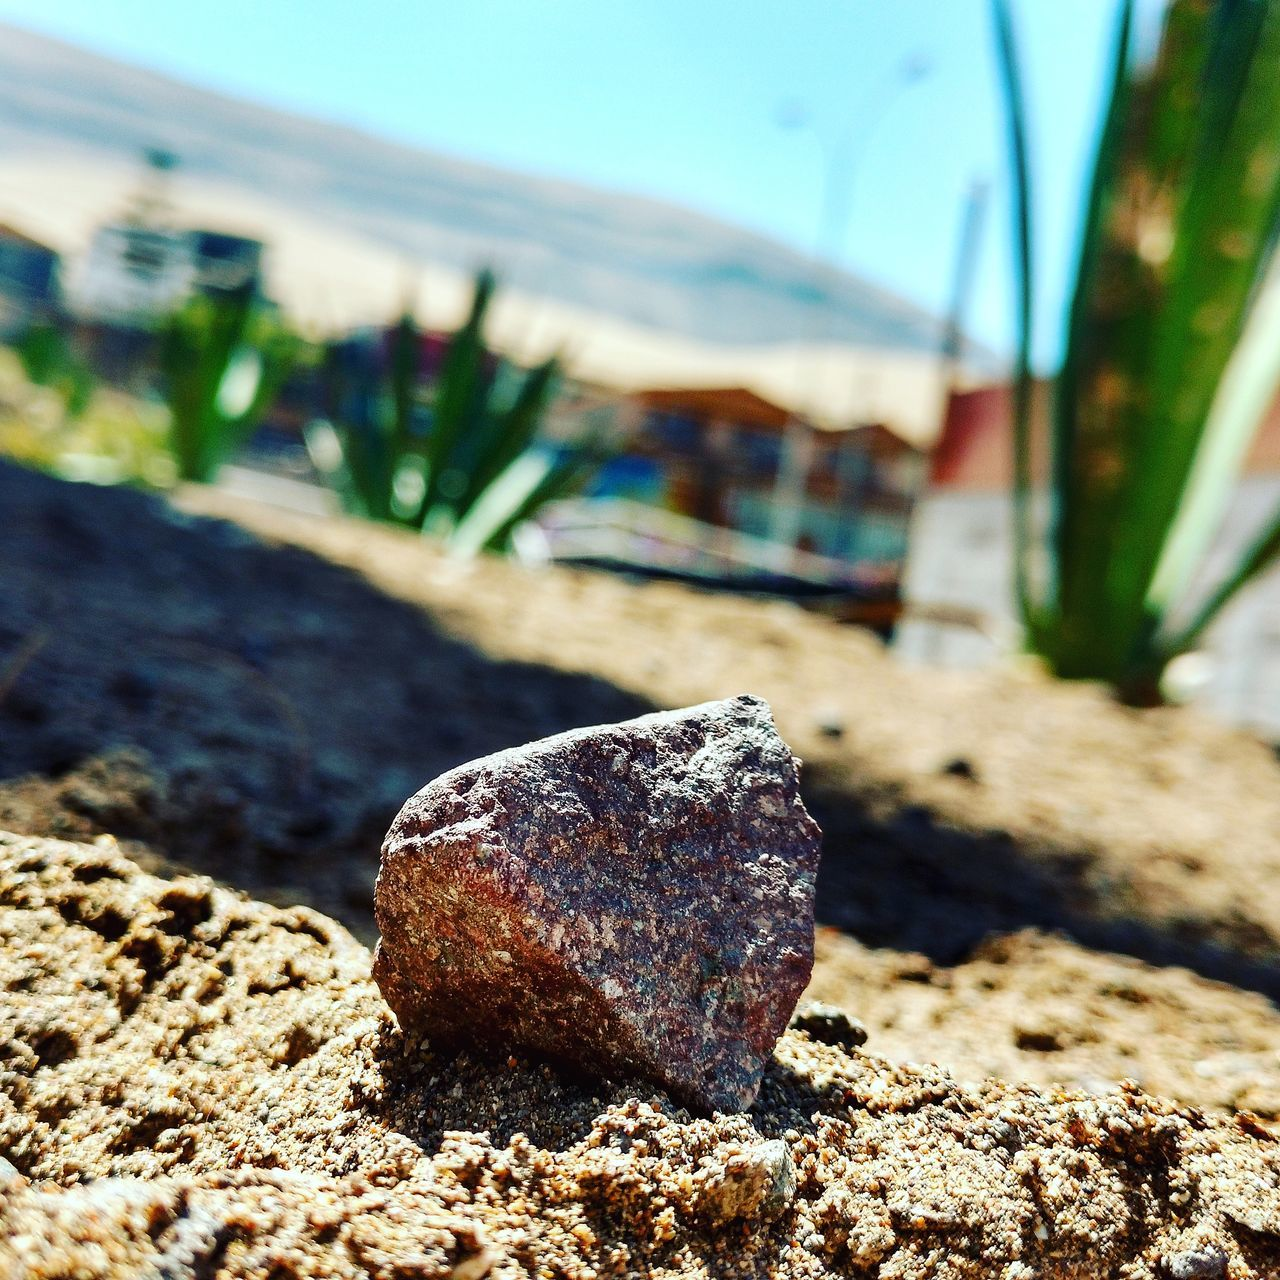 rock - object, focus on foreground, day, no people, outdoors, close-up, nature, beach, sand, sky